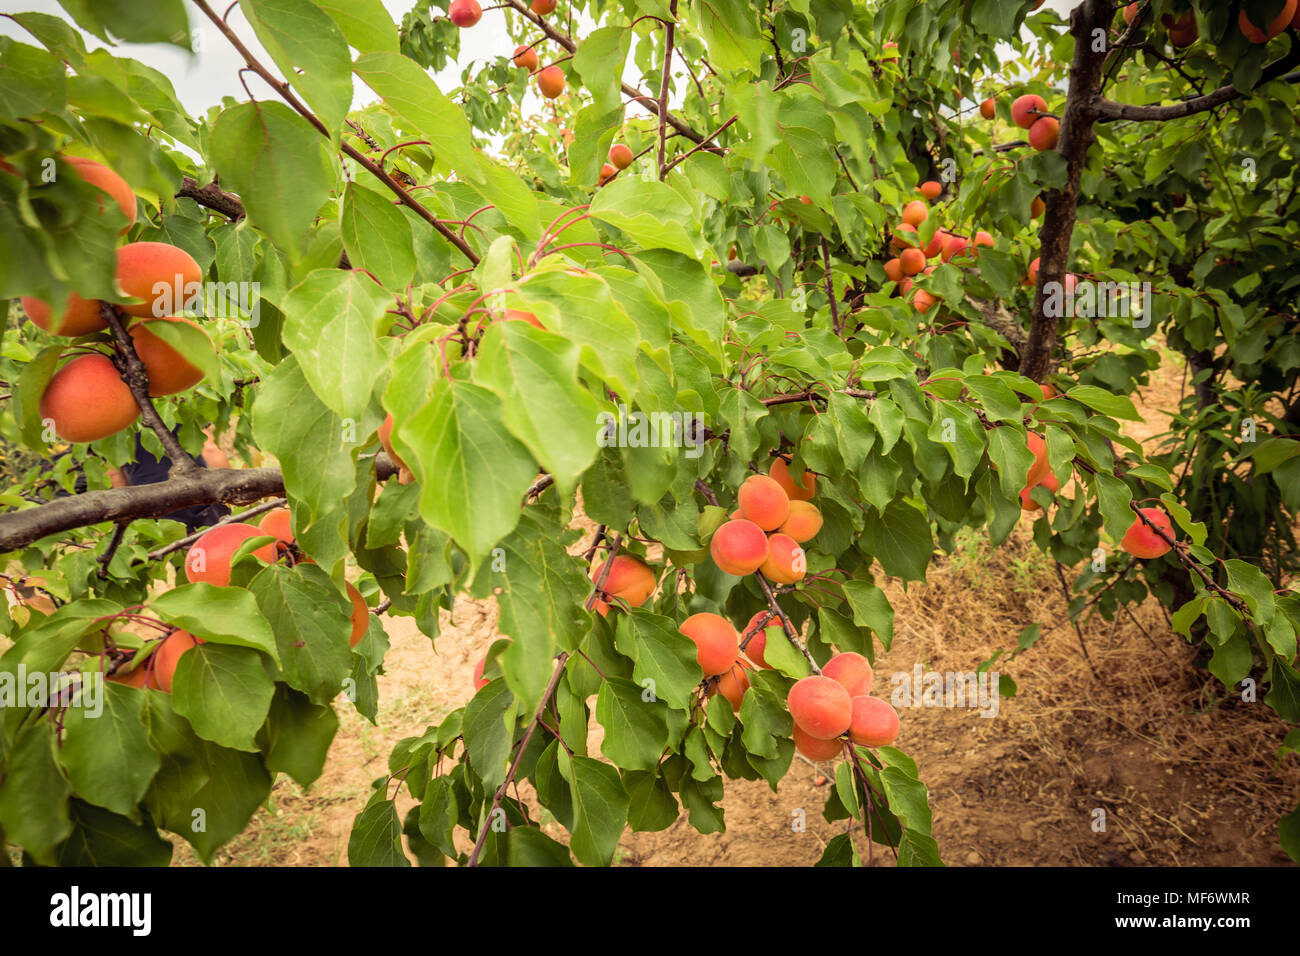 Apricot tree. Branches with apricots and green leaves - Stock Image